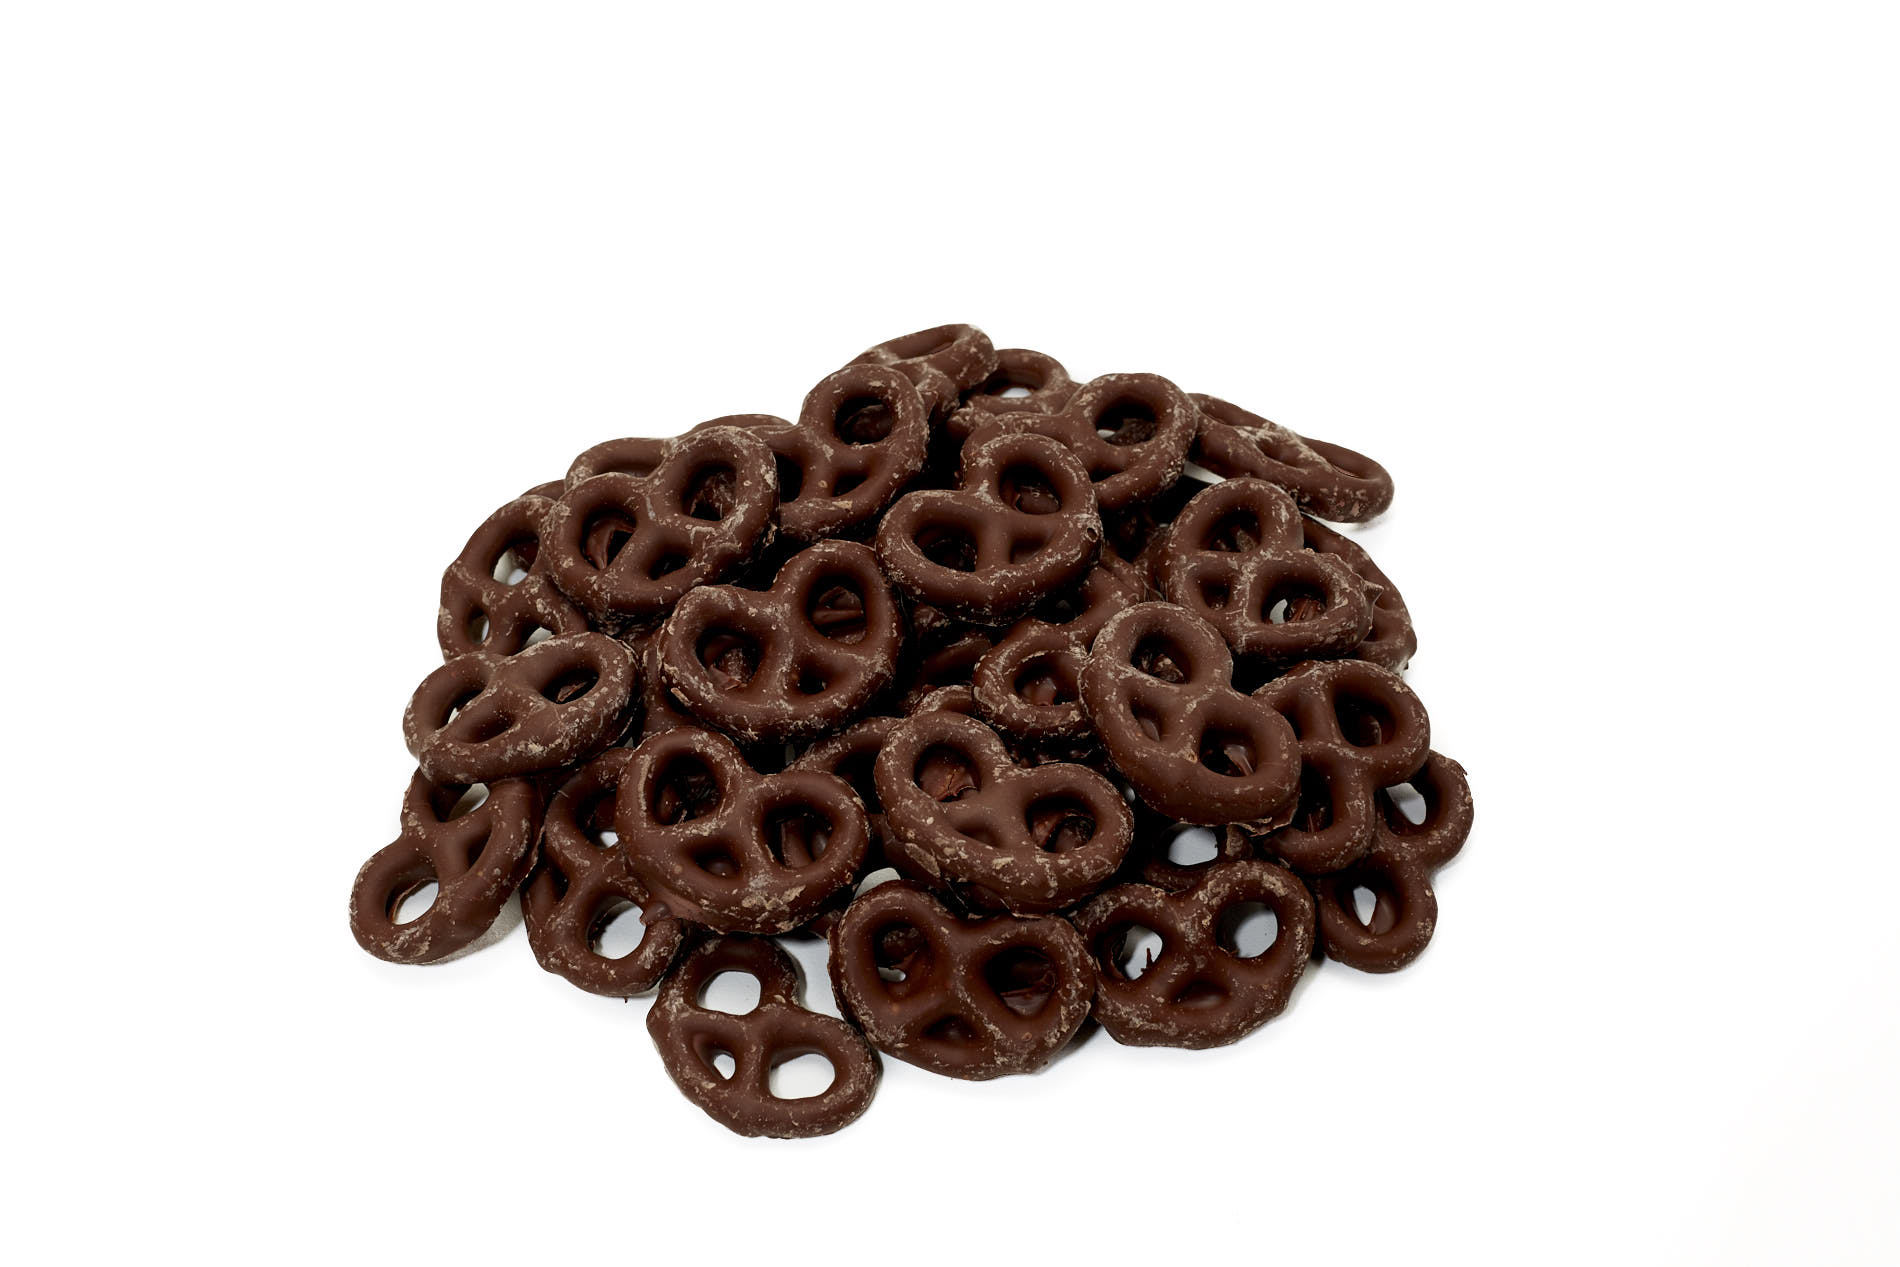 Chocolate-covered pretzels